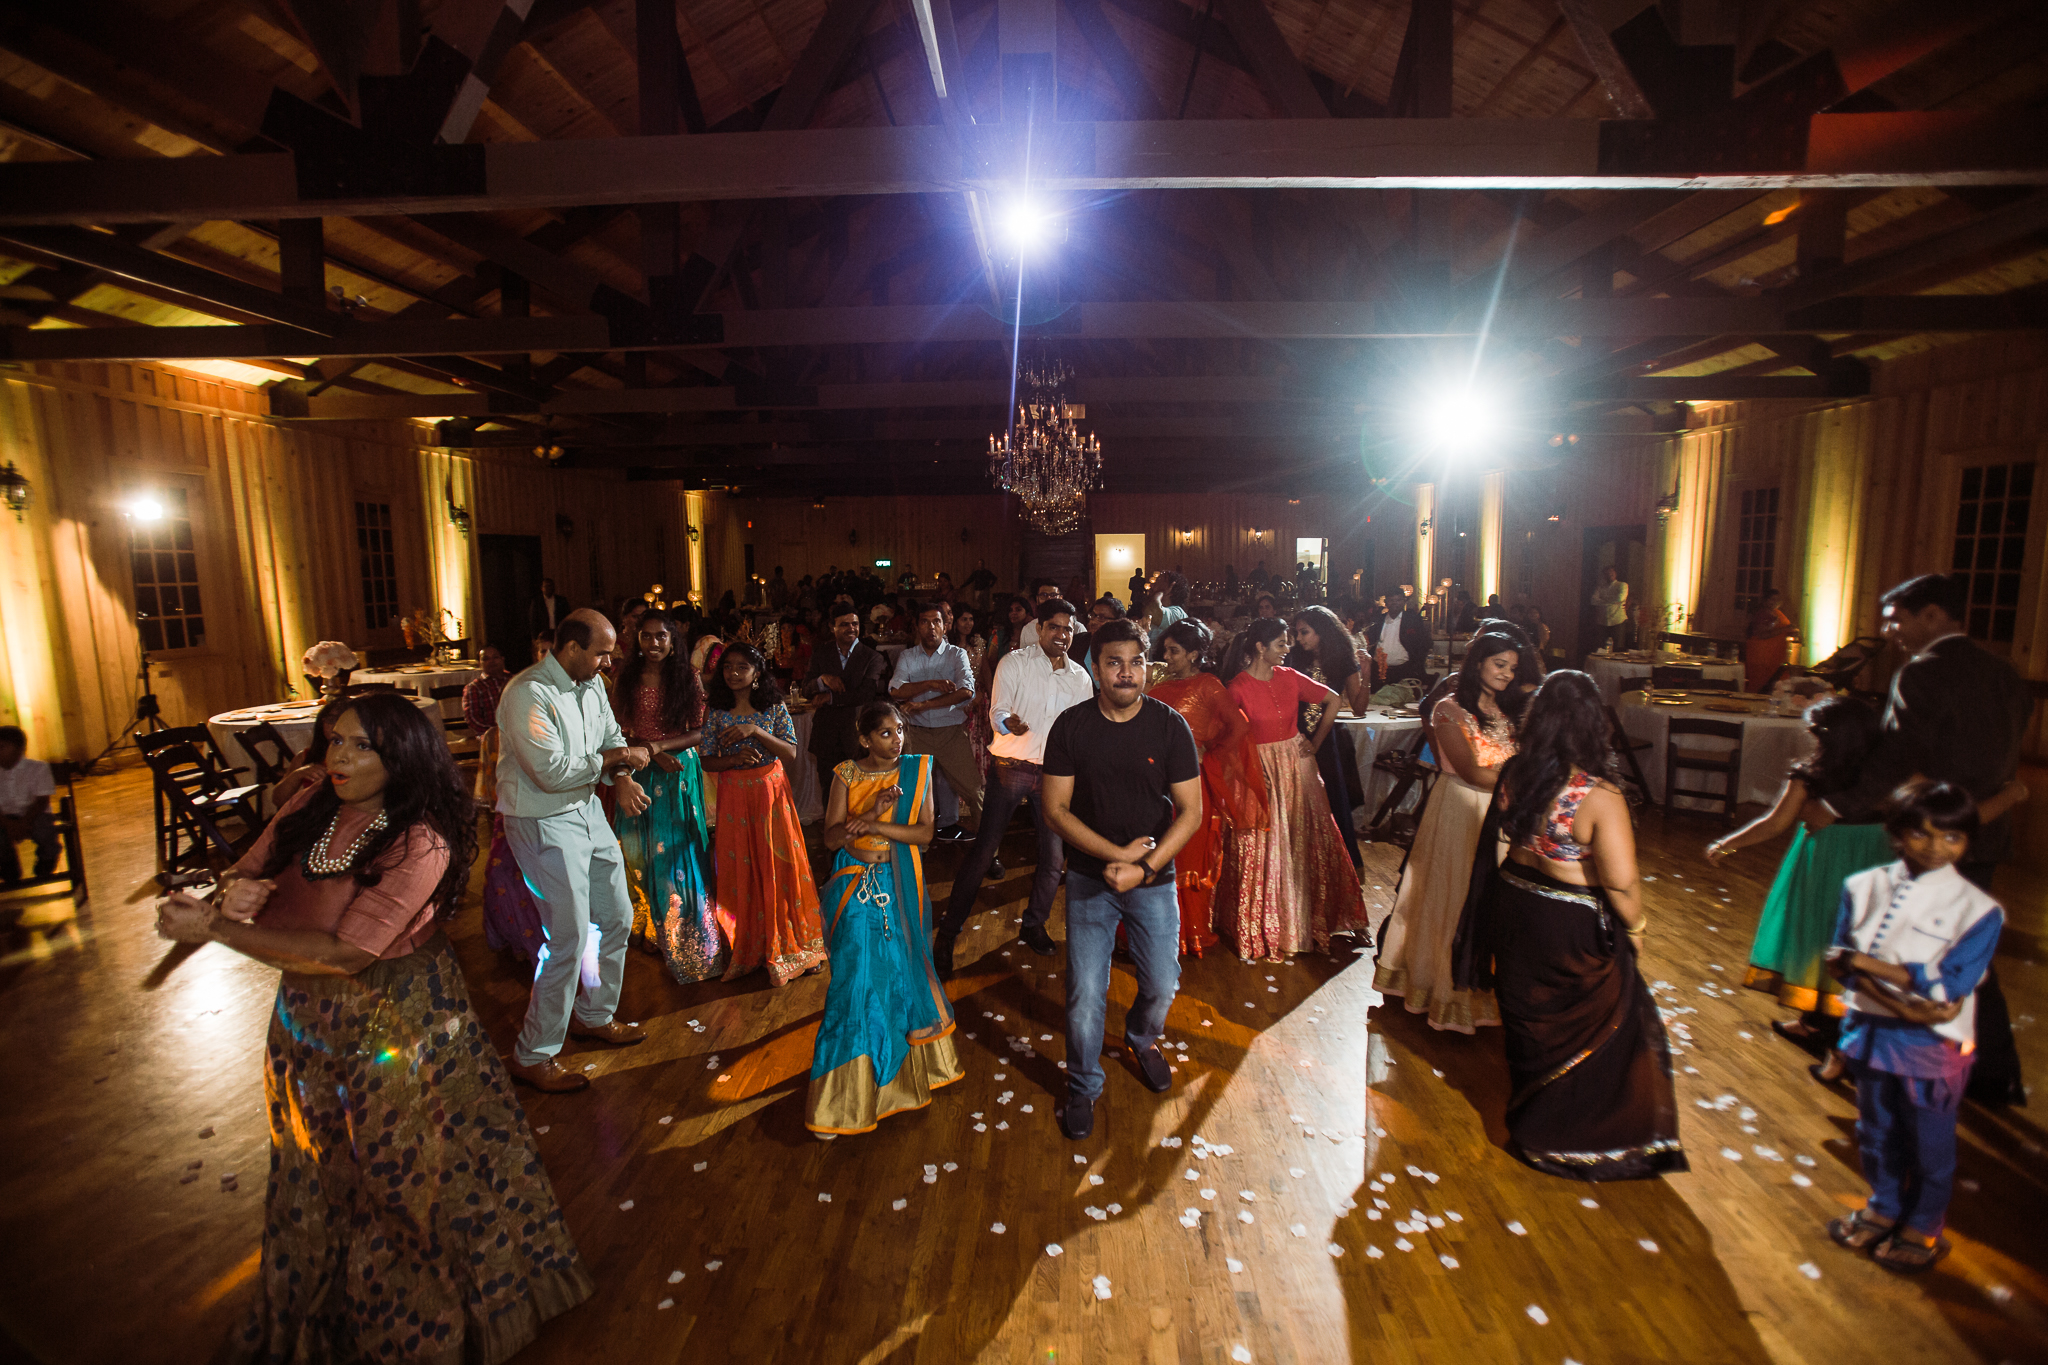 Keerthi and Kishore - Indian Wedding - elizalde photography - Dallas Photographer - South Asian Wedding Photographer - The SPRINGS Event Venue (220 of 226).jpg